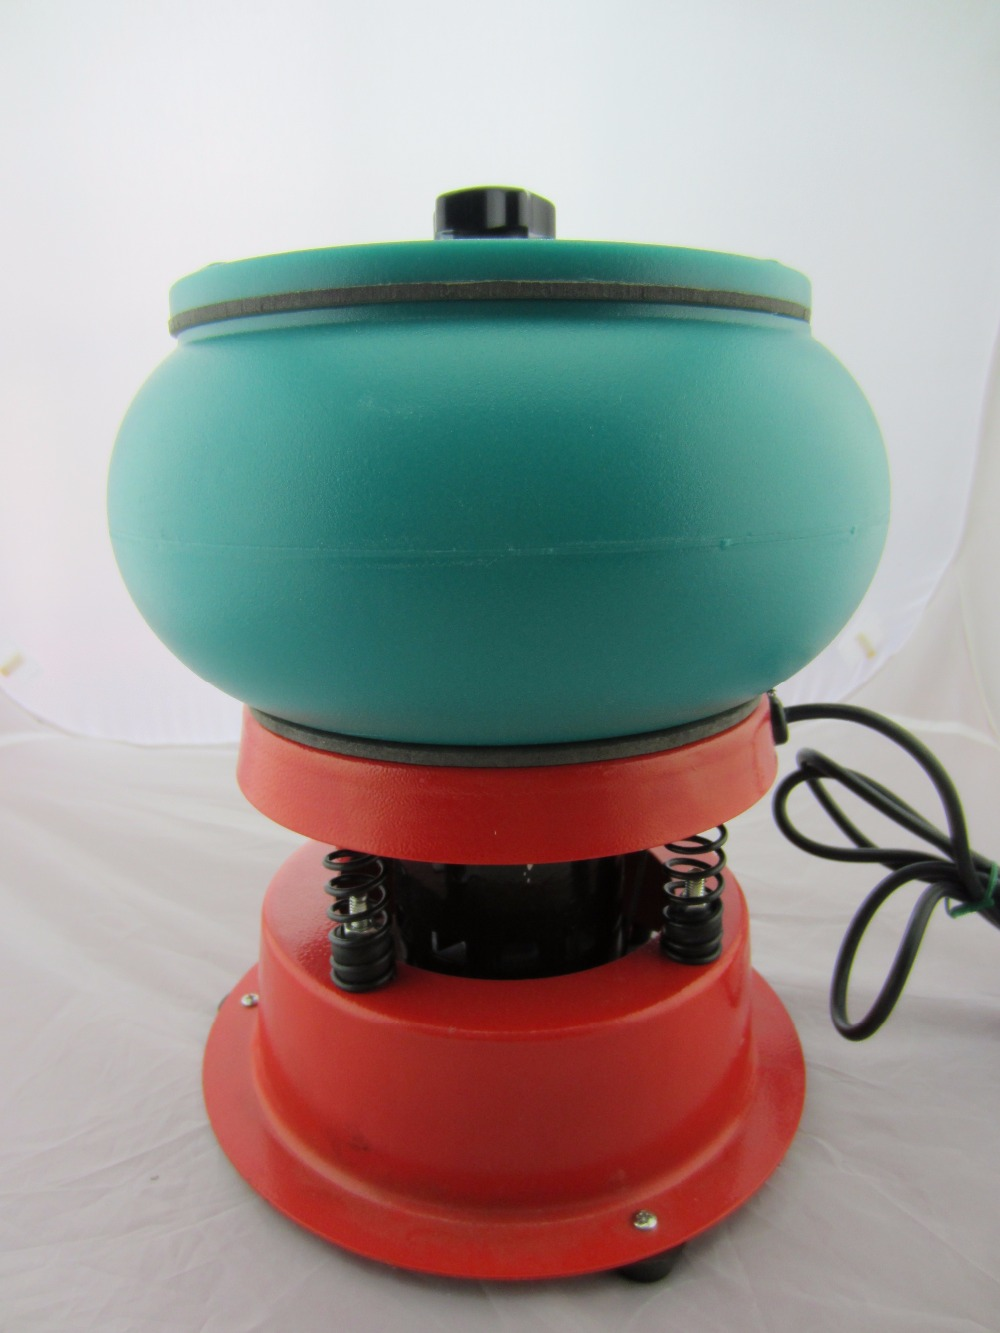 vibratory tumbler, Mini Electric Polisher, jewelry Polishing Machine, jewelry rock vibratory tumblervibratory tumbler, Mini Electric Polisher, jewelry Polishing Machine, jewelry rock vibratory tumbler